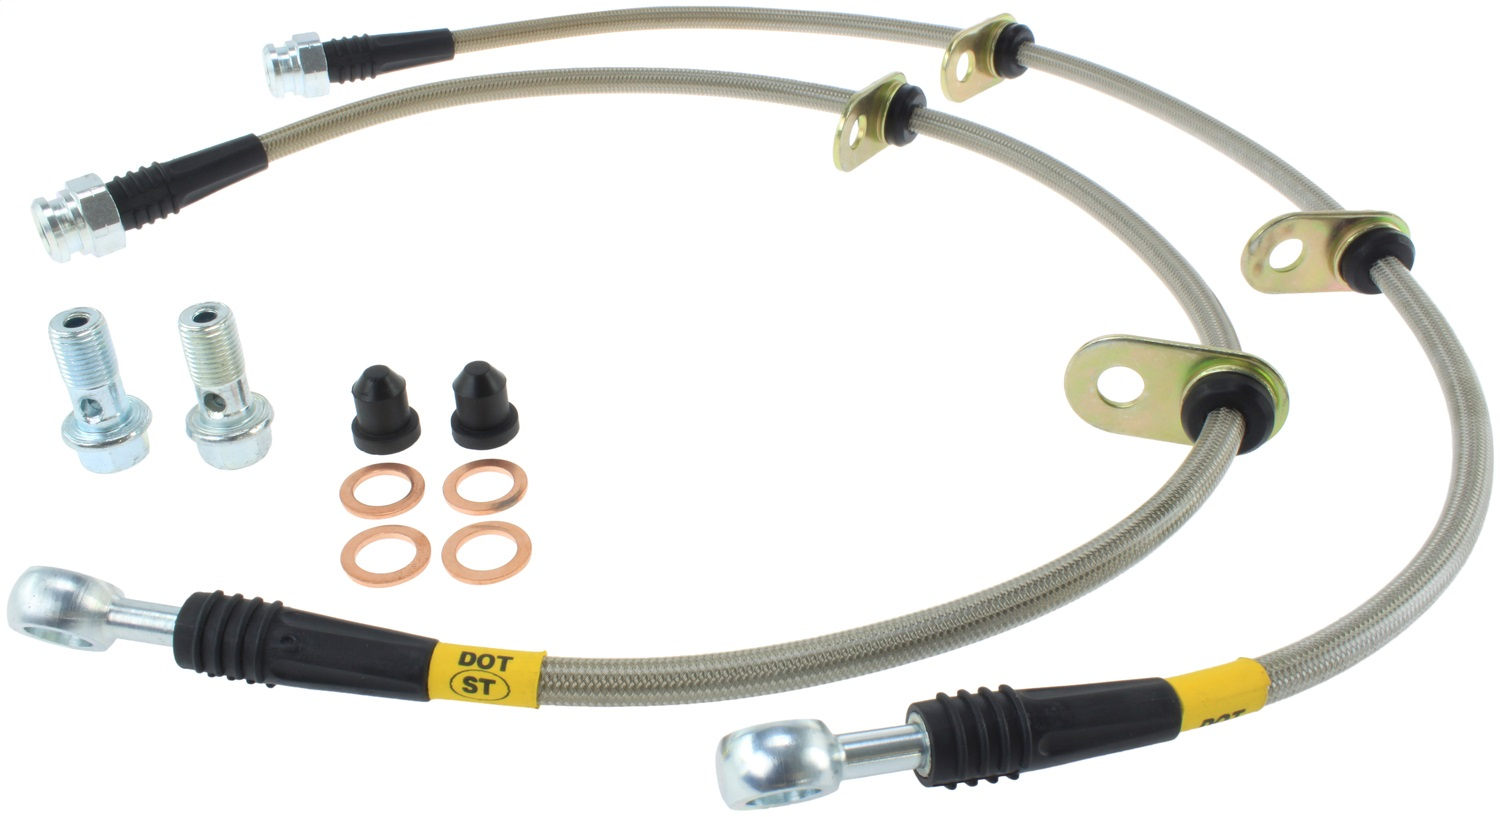 StopTech 950.40001 Stainless Steel Braided Brake Hose Kit Fits 91-05 NSX